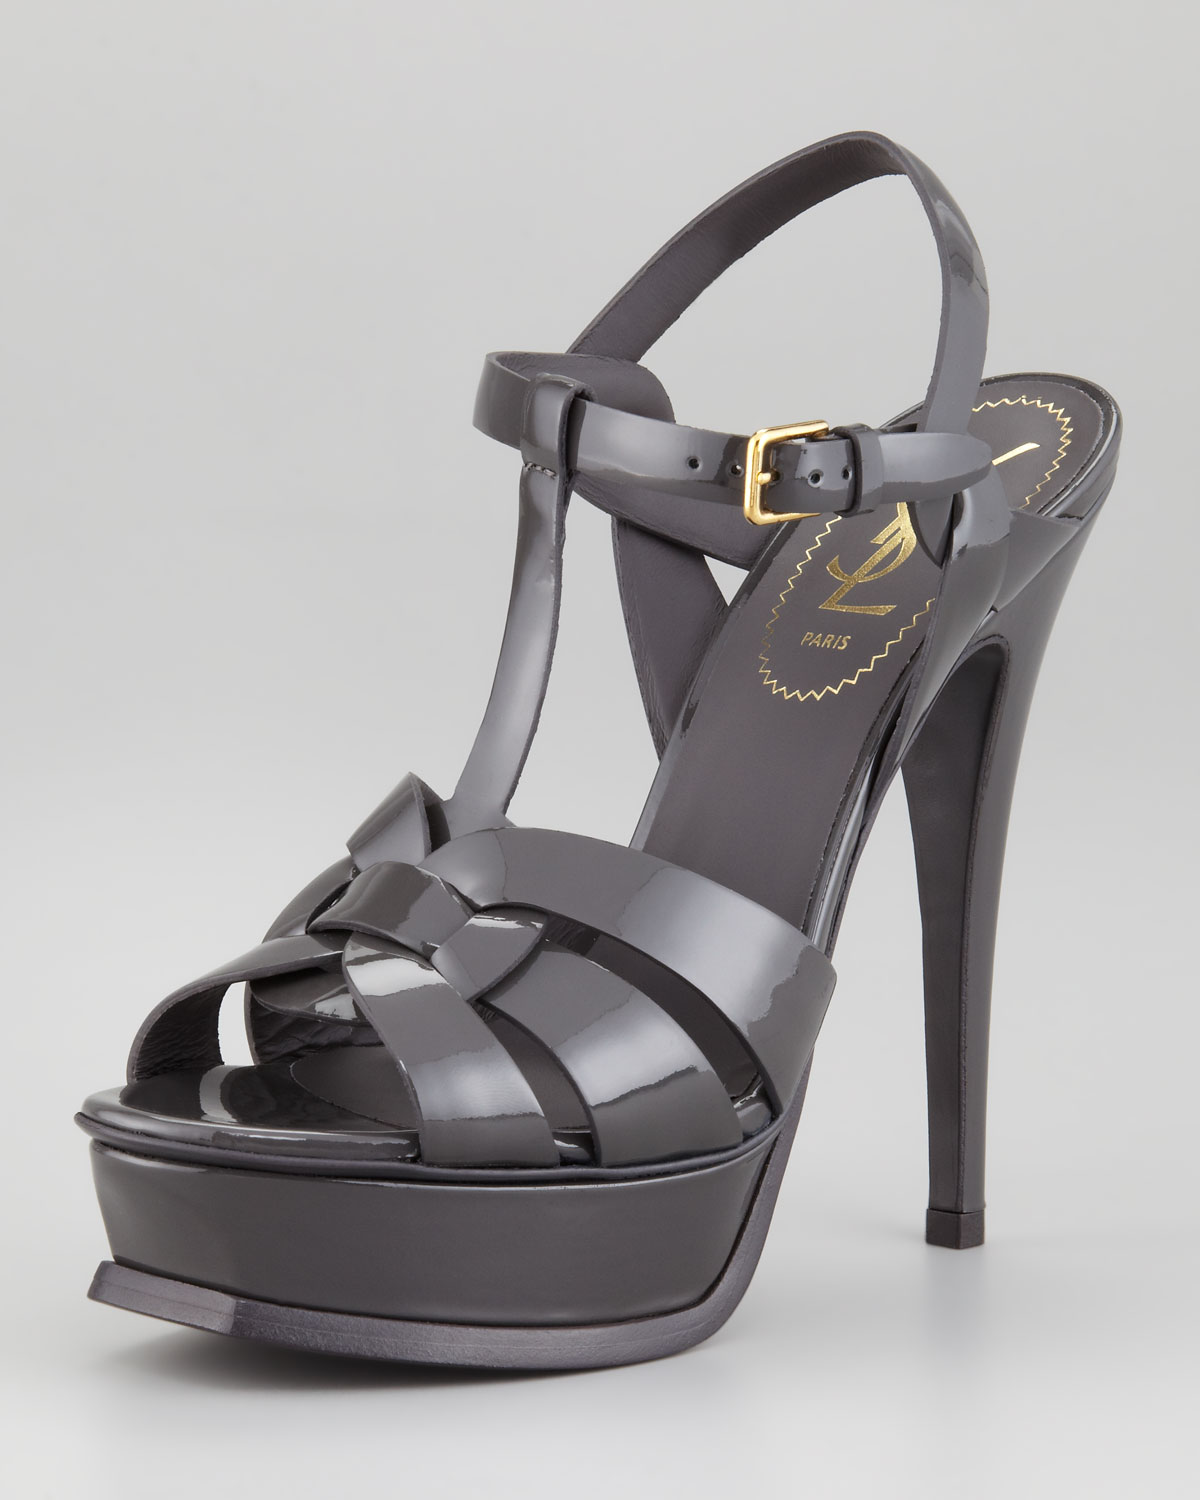 0390f80d6a9 Saint Laurent Tribute Patent Leather Sandal Light Gray in Gray - Lyst